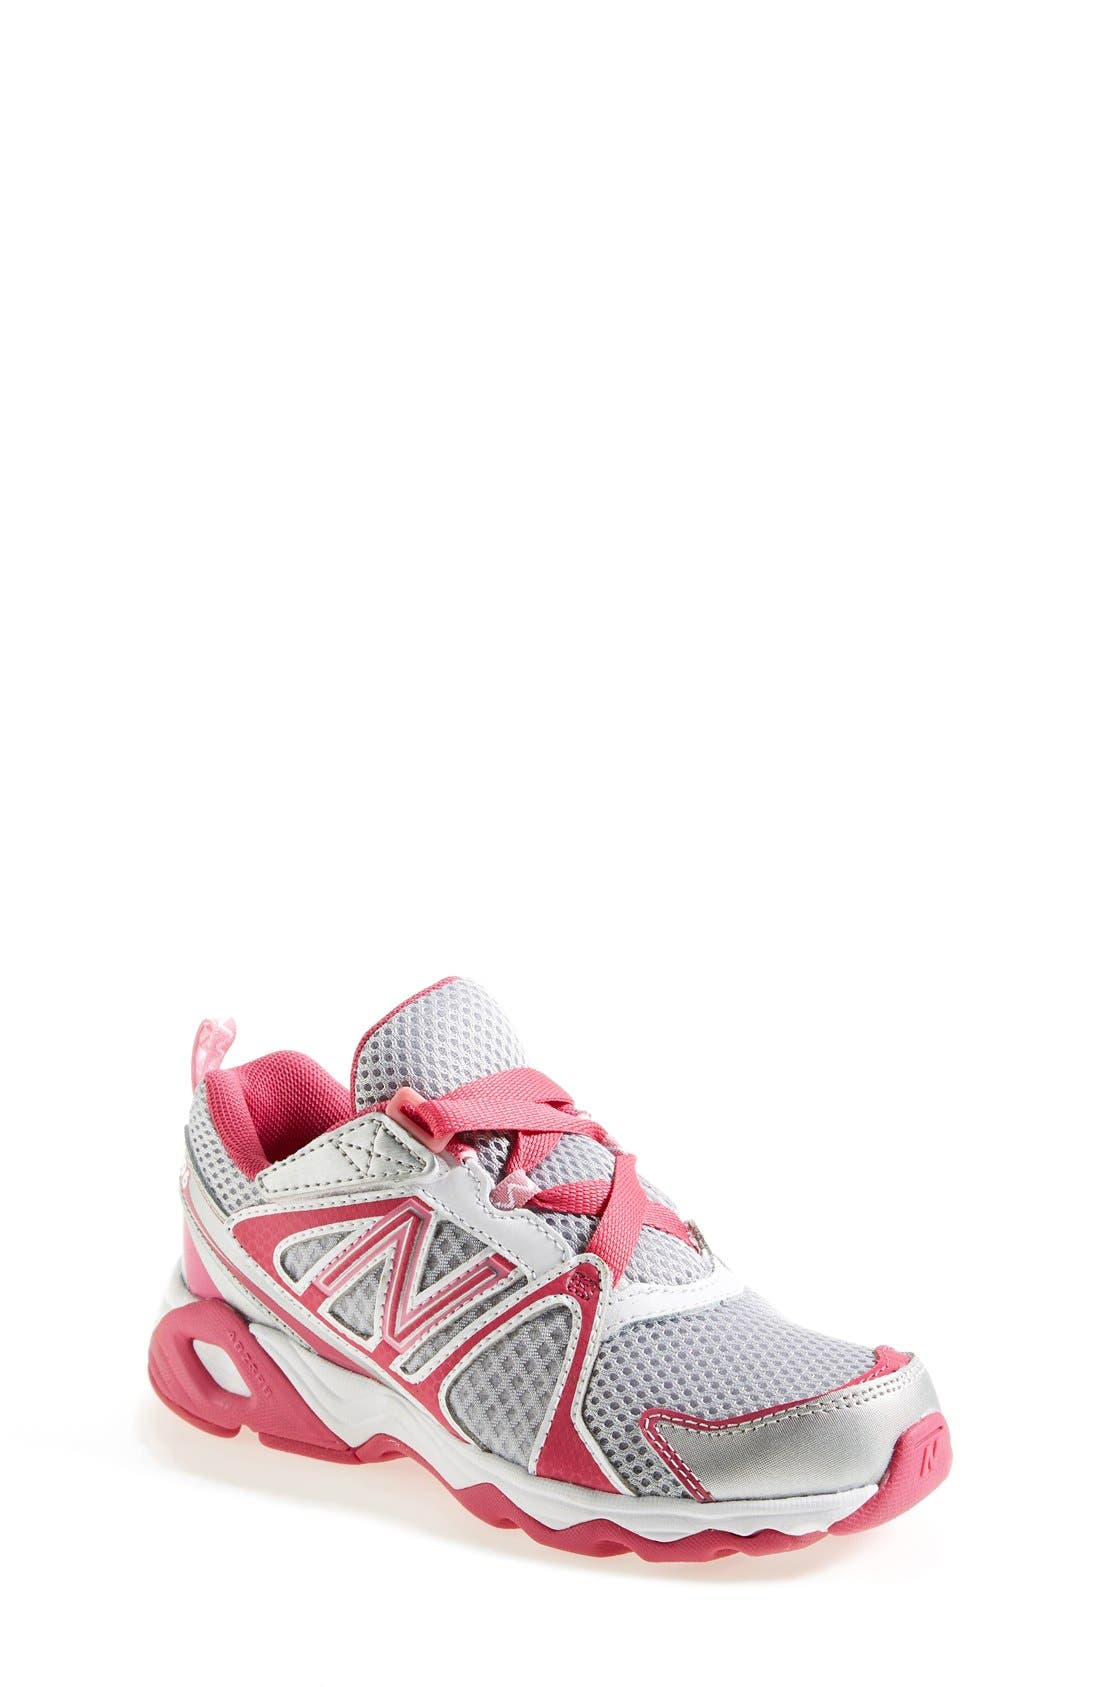 Alternate Image 1 Selected - New Balance '696' Athletic Shoe (Toddler, Little Kid & Big Kid) (Online Only)